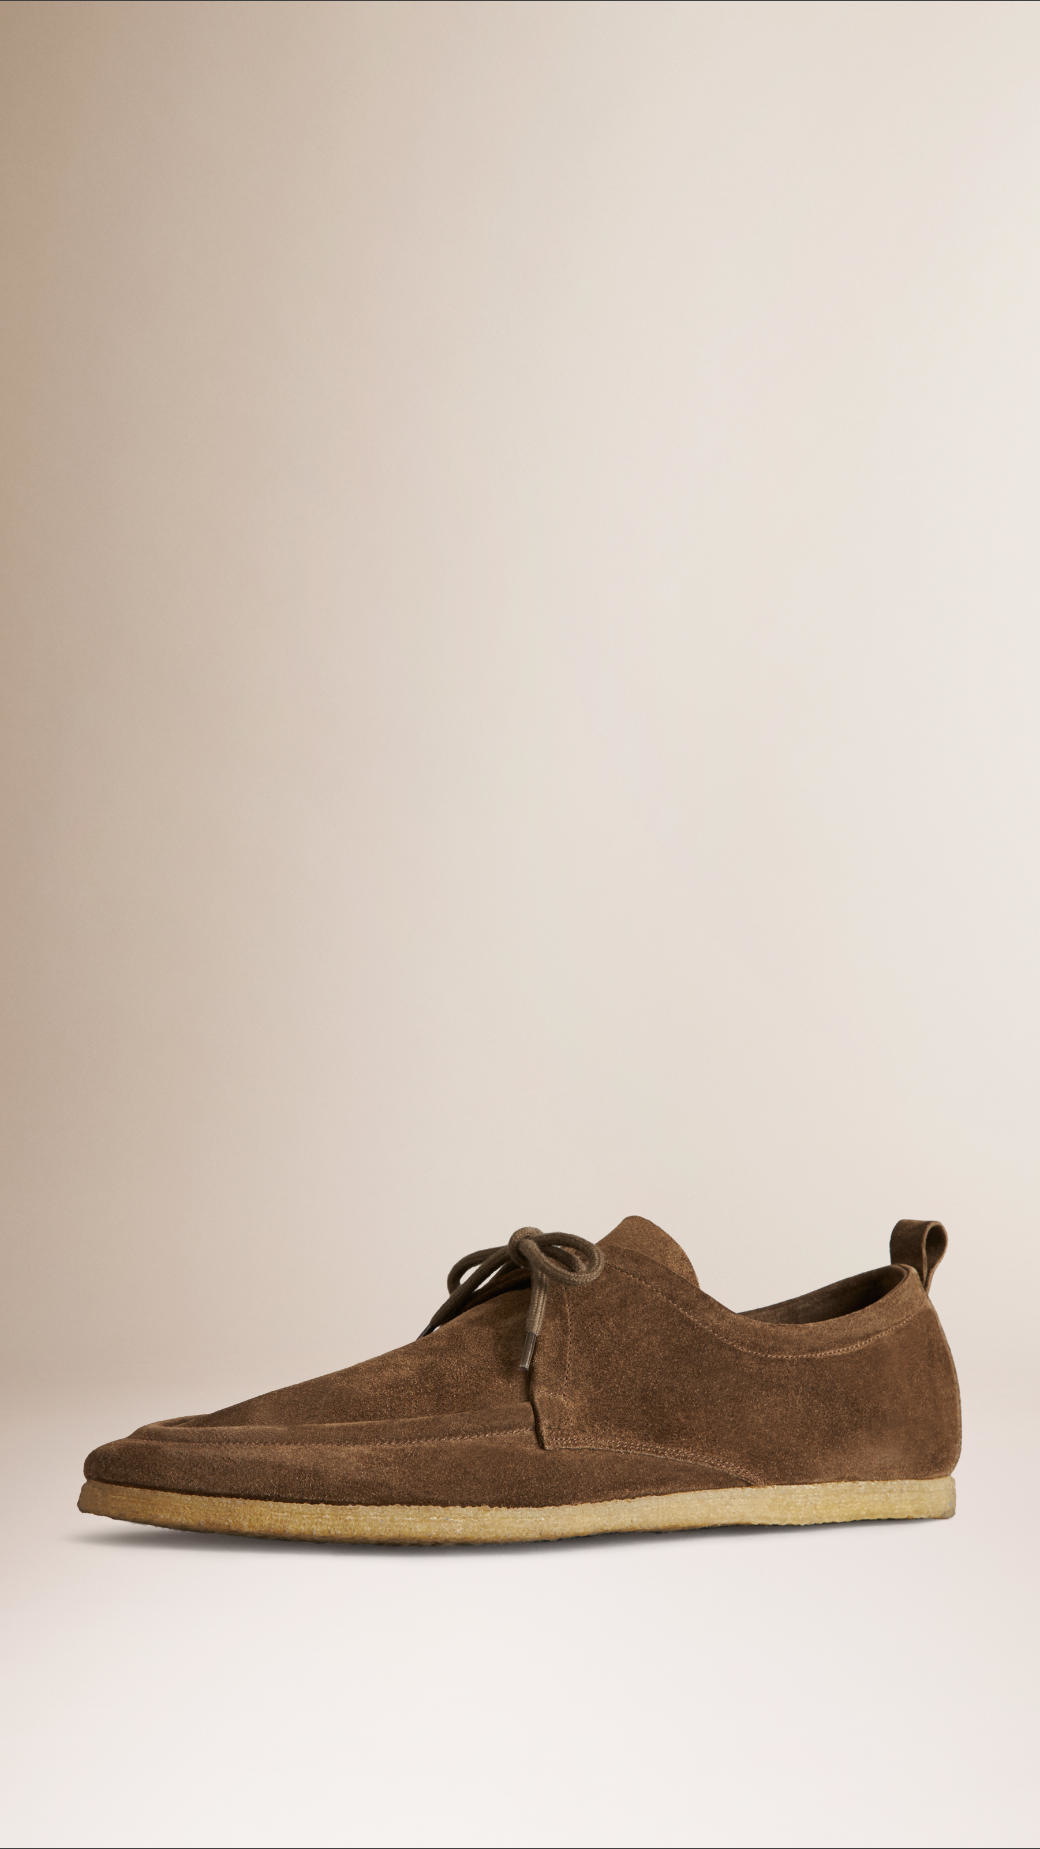 Lyst Burberry Crepe Sole Suede Shoes Brown In Brown For Men